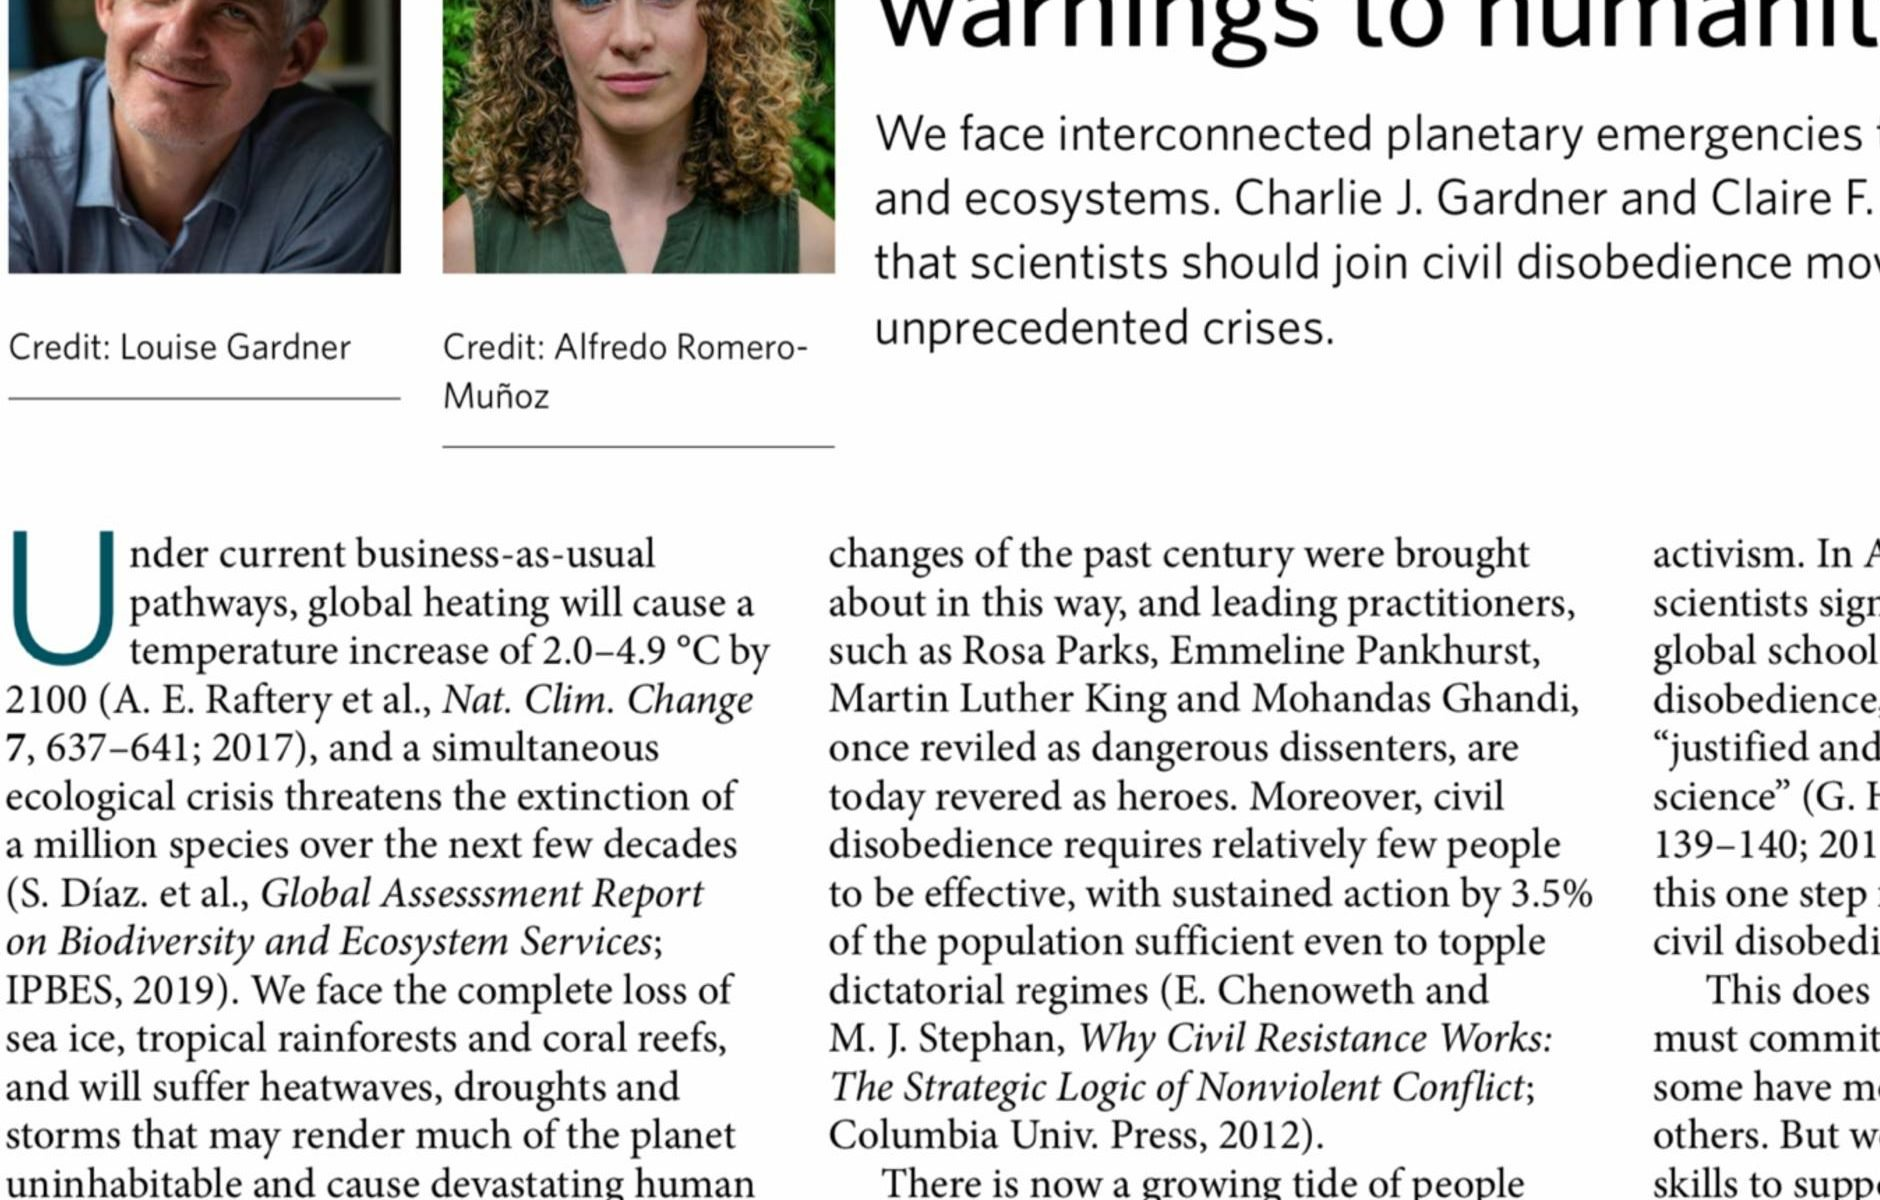 Gardner & Wordley (2019)